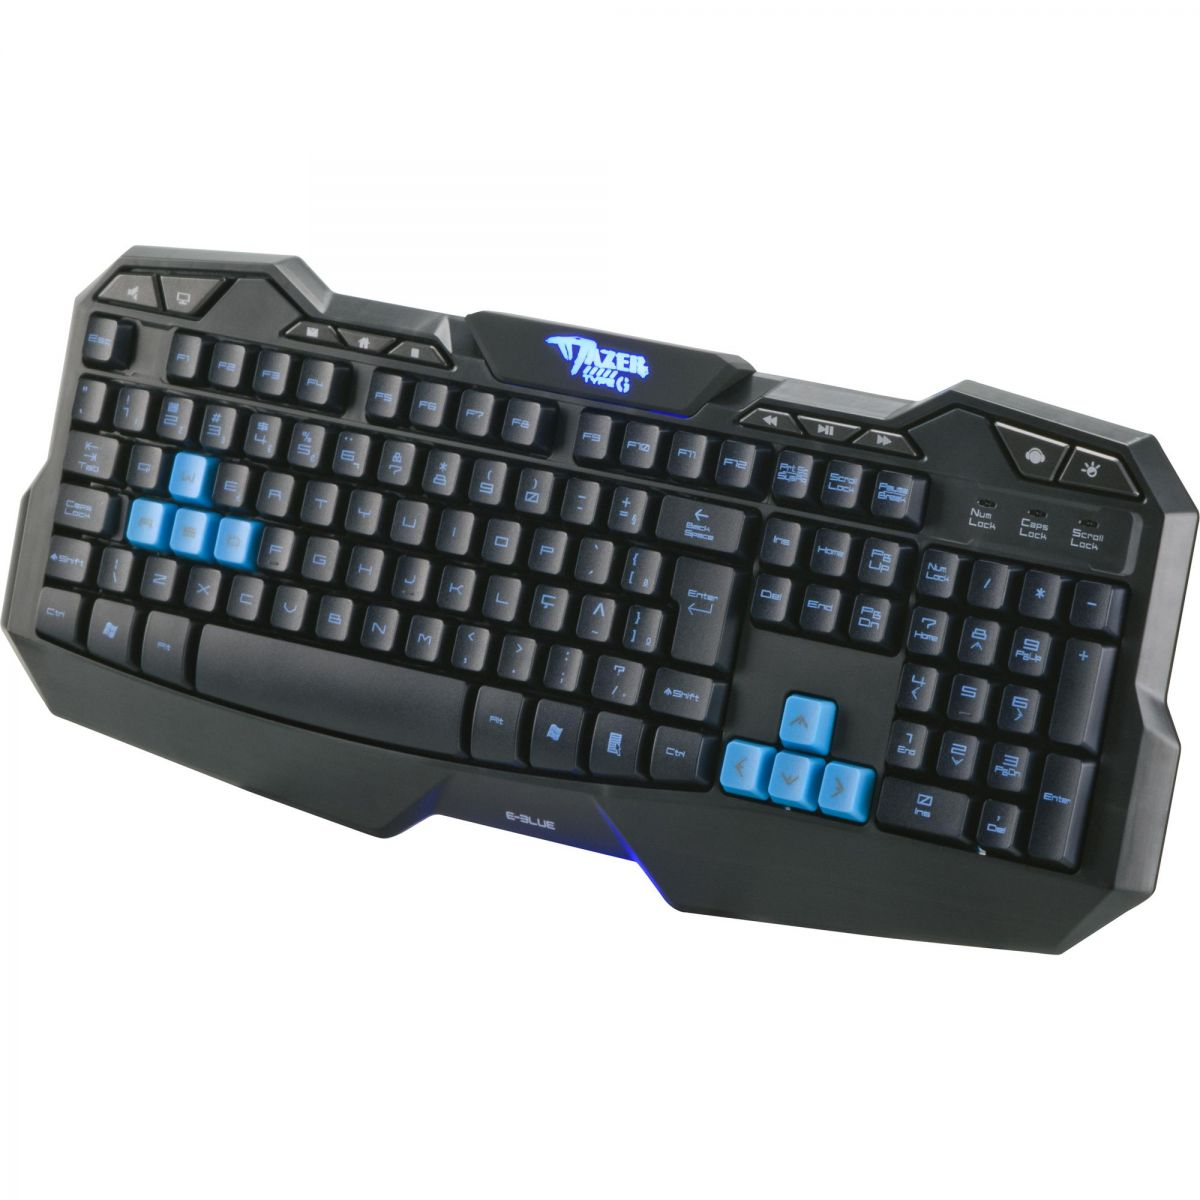 Teclado Gamer E-Blue Multimídia USB Mazer Type G Preto/Azul - 52181